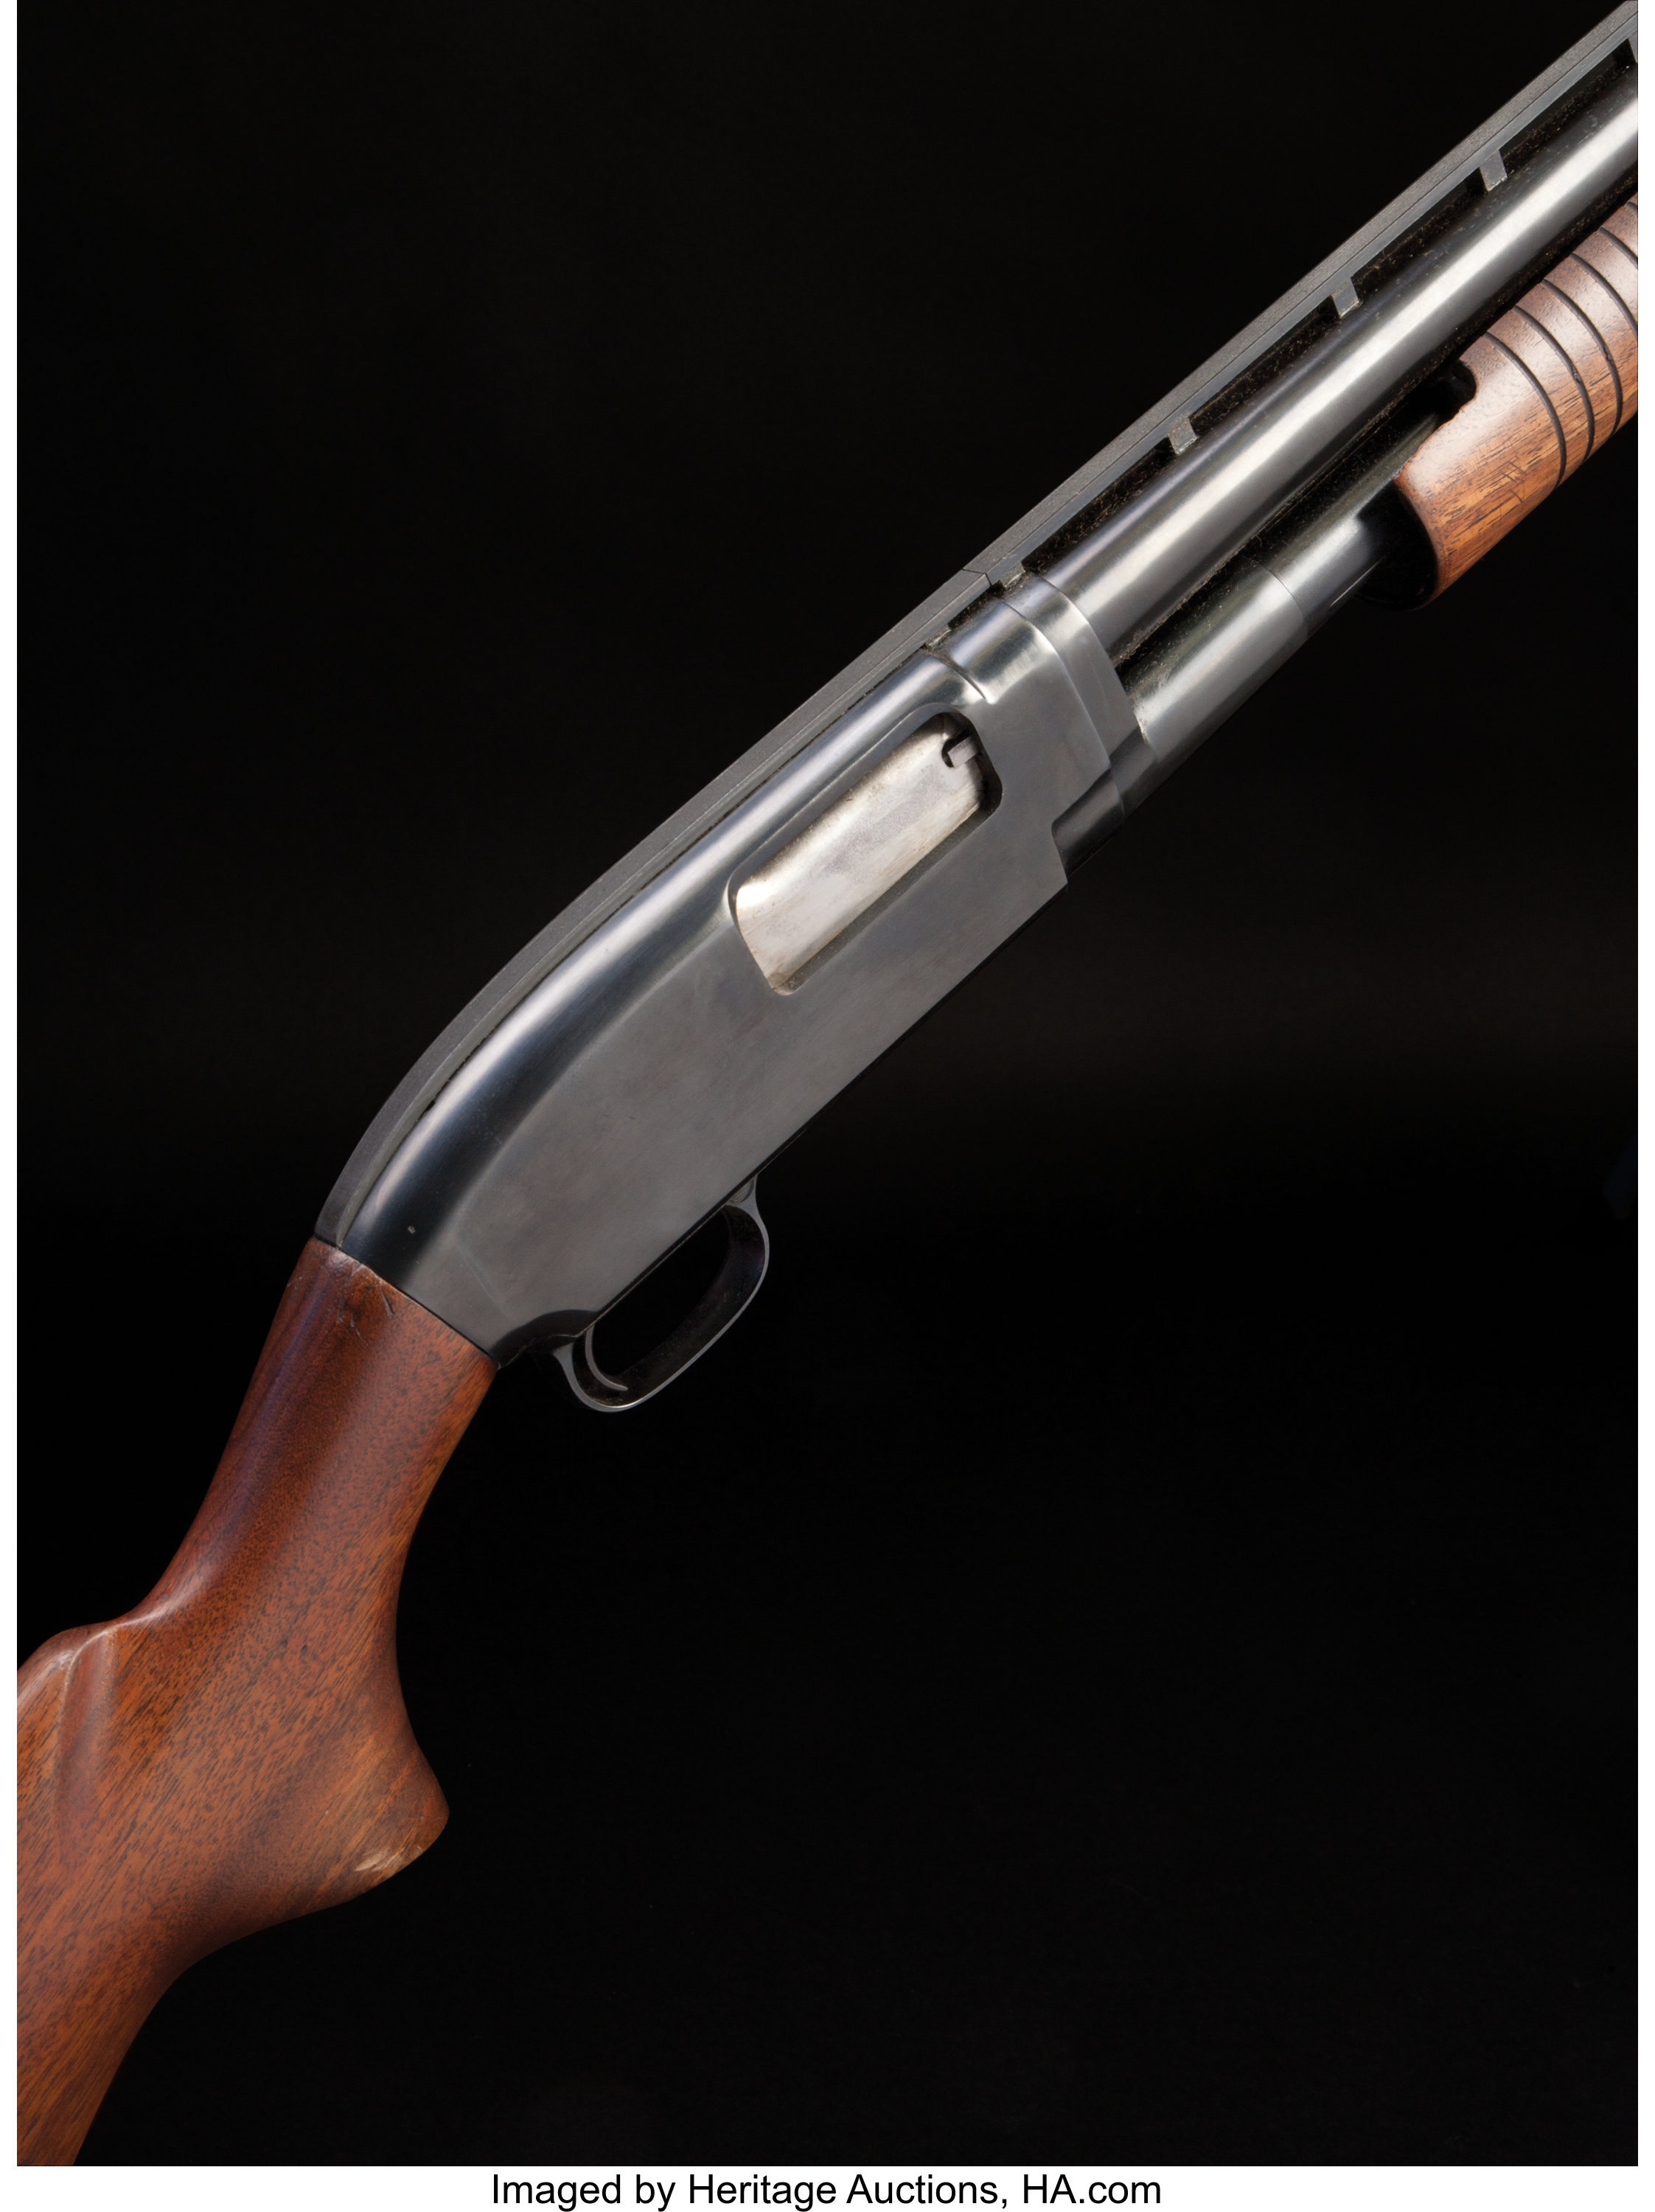 Winchester model 12 dates of manufacture